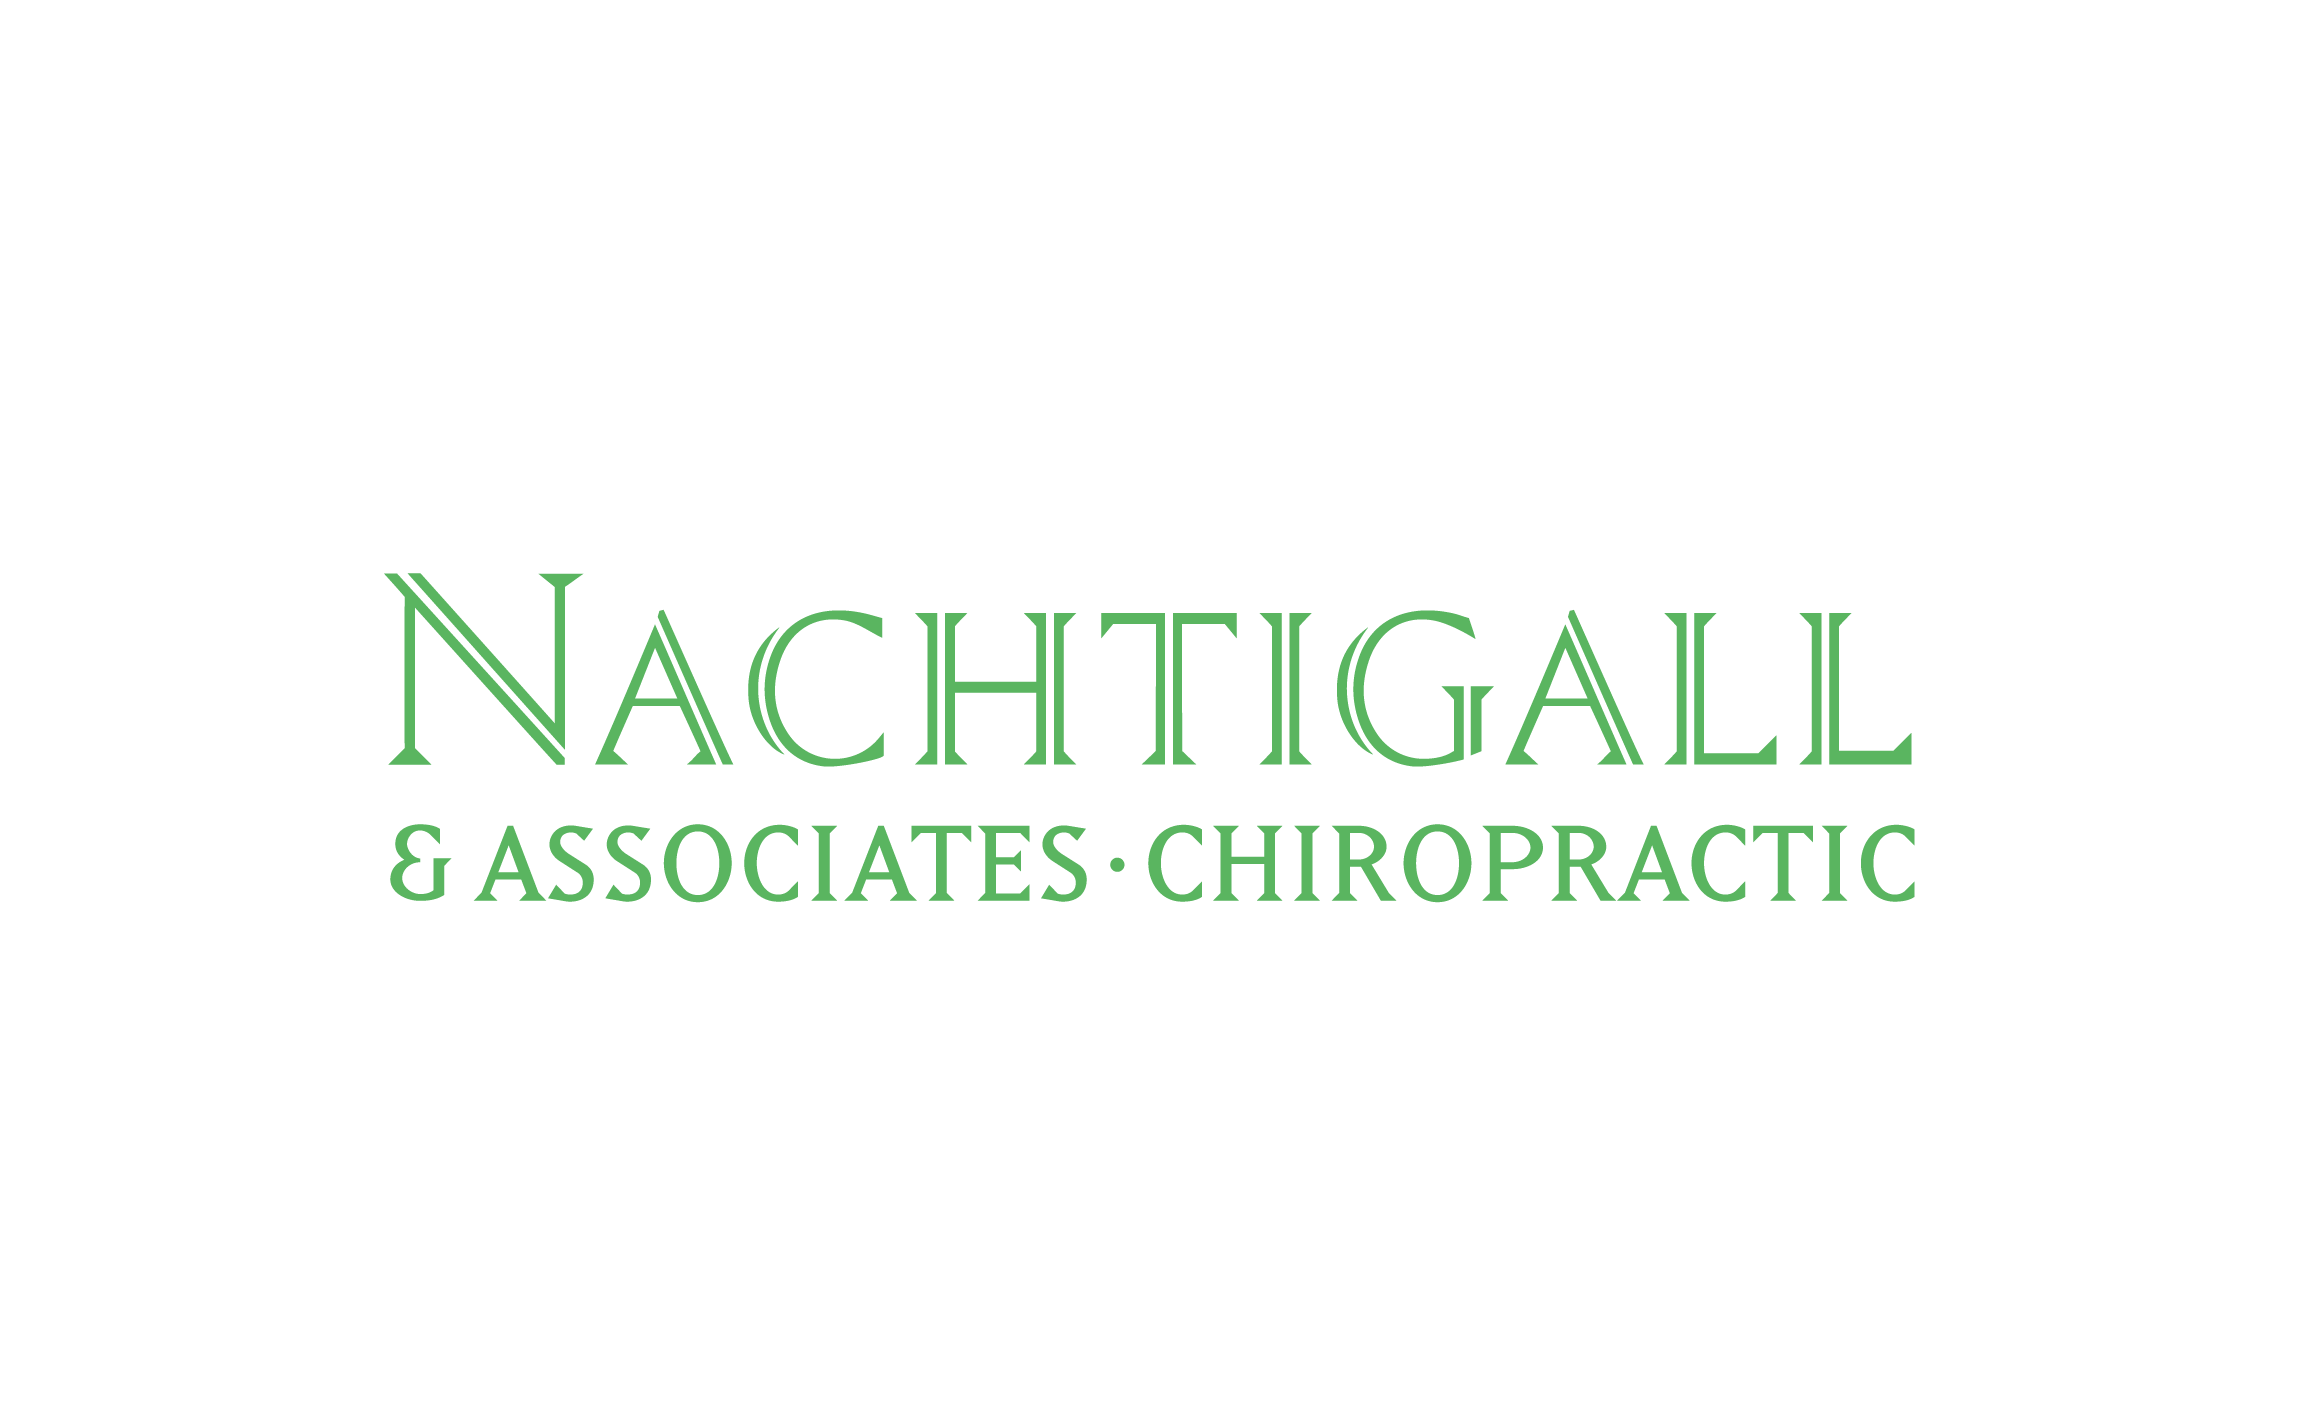 Nachtigall-logoJD-site-01.png